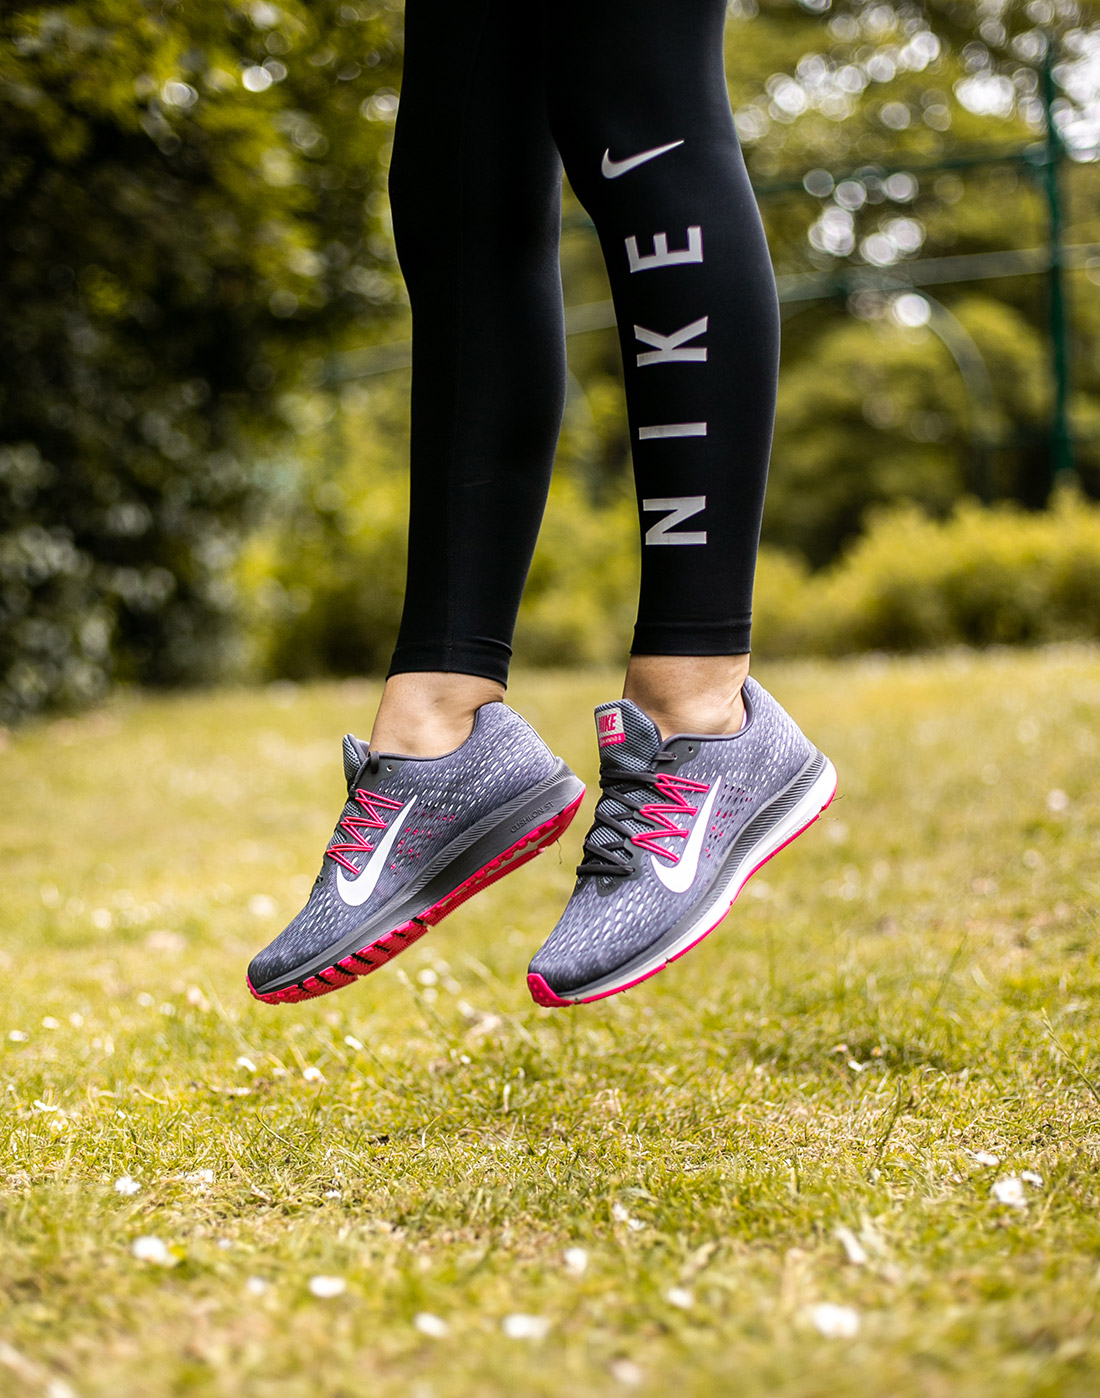 new product c11ba d5824 Nike Womens Air Zoom Winflo 5 | Life Style Sports